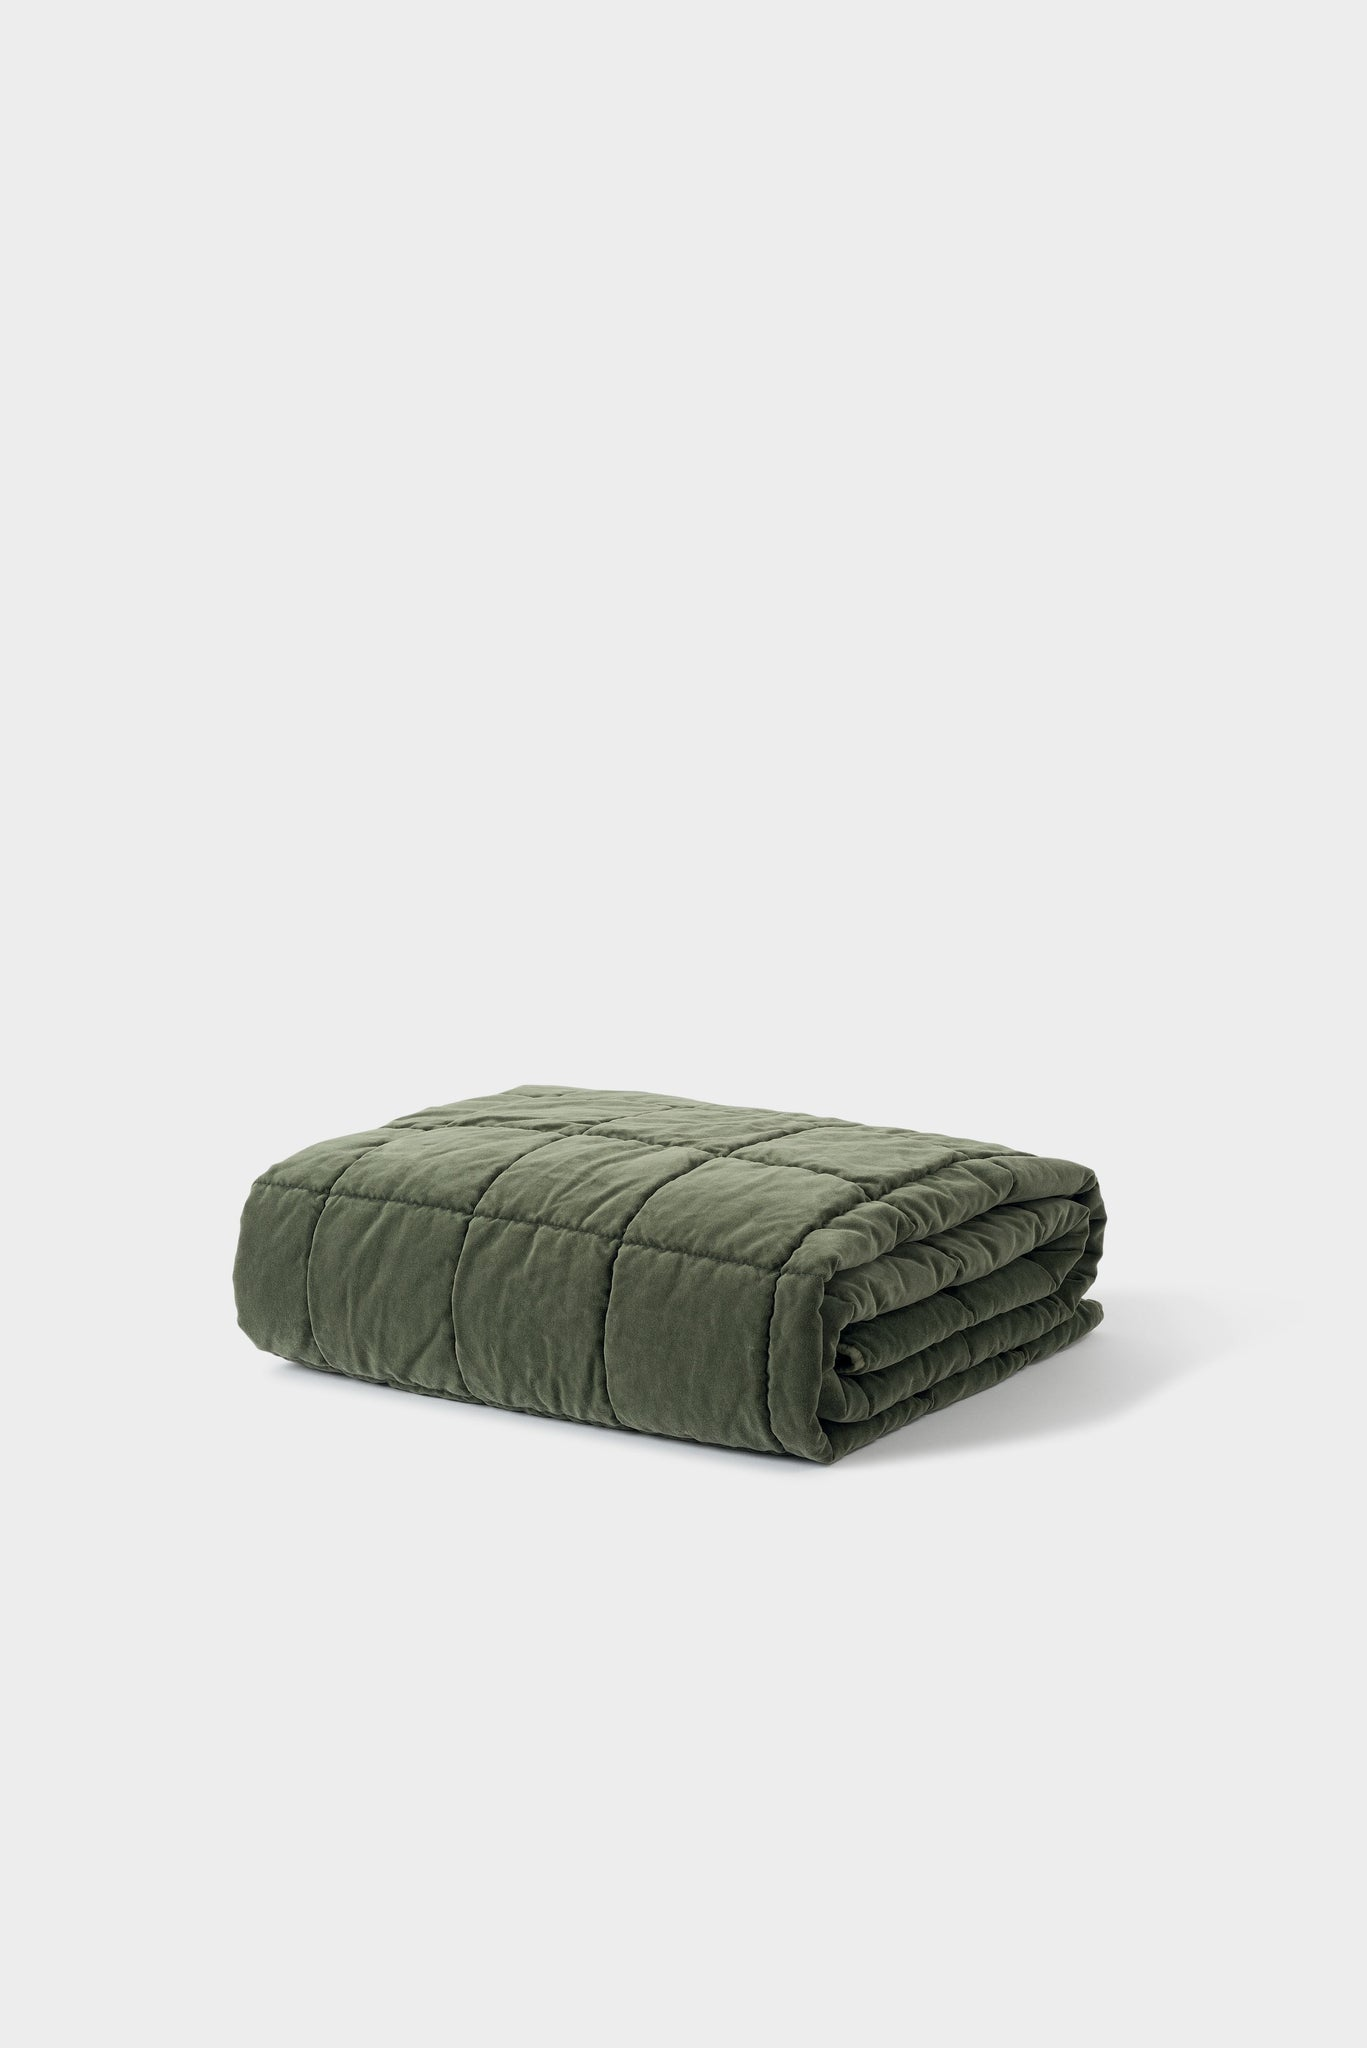 Washed Velvet Quilted Throw - Kale